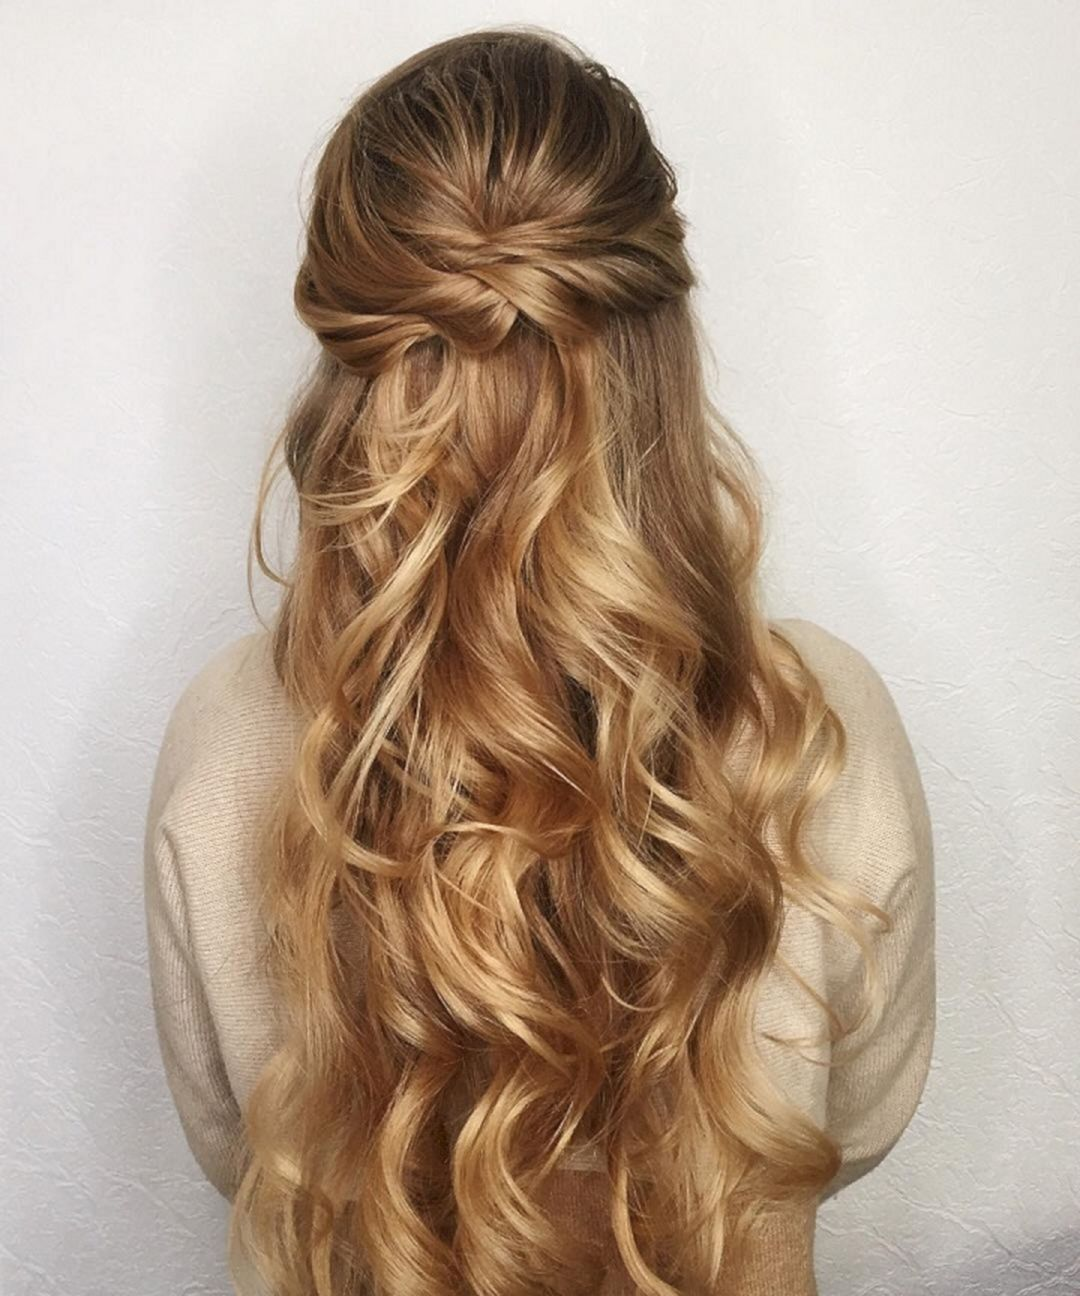 Stunning Half Up Half Down Wedding Hairstyles Ideas No 54 Hair Styles Long Hair Styles Partial Updo